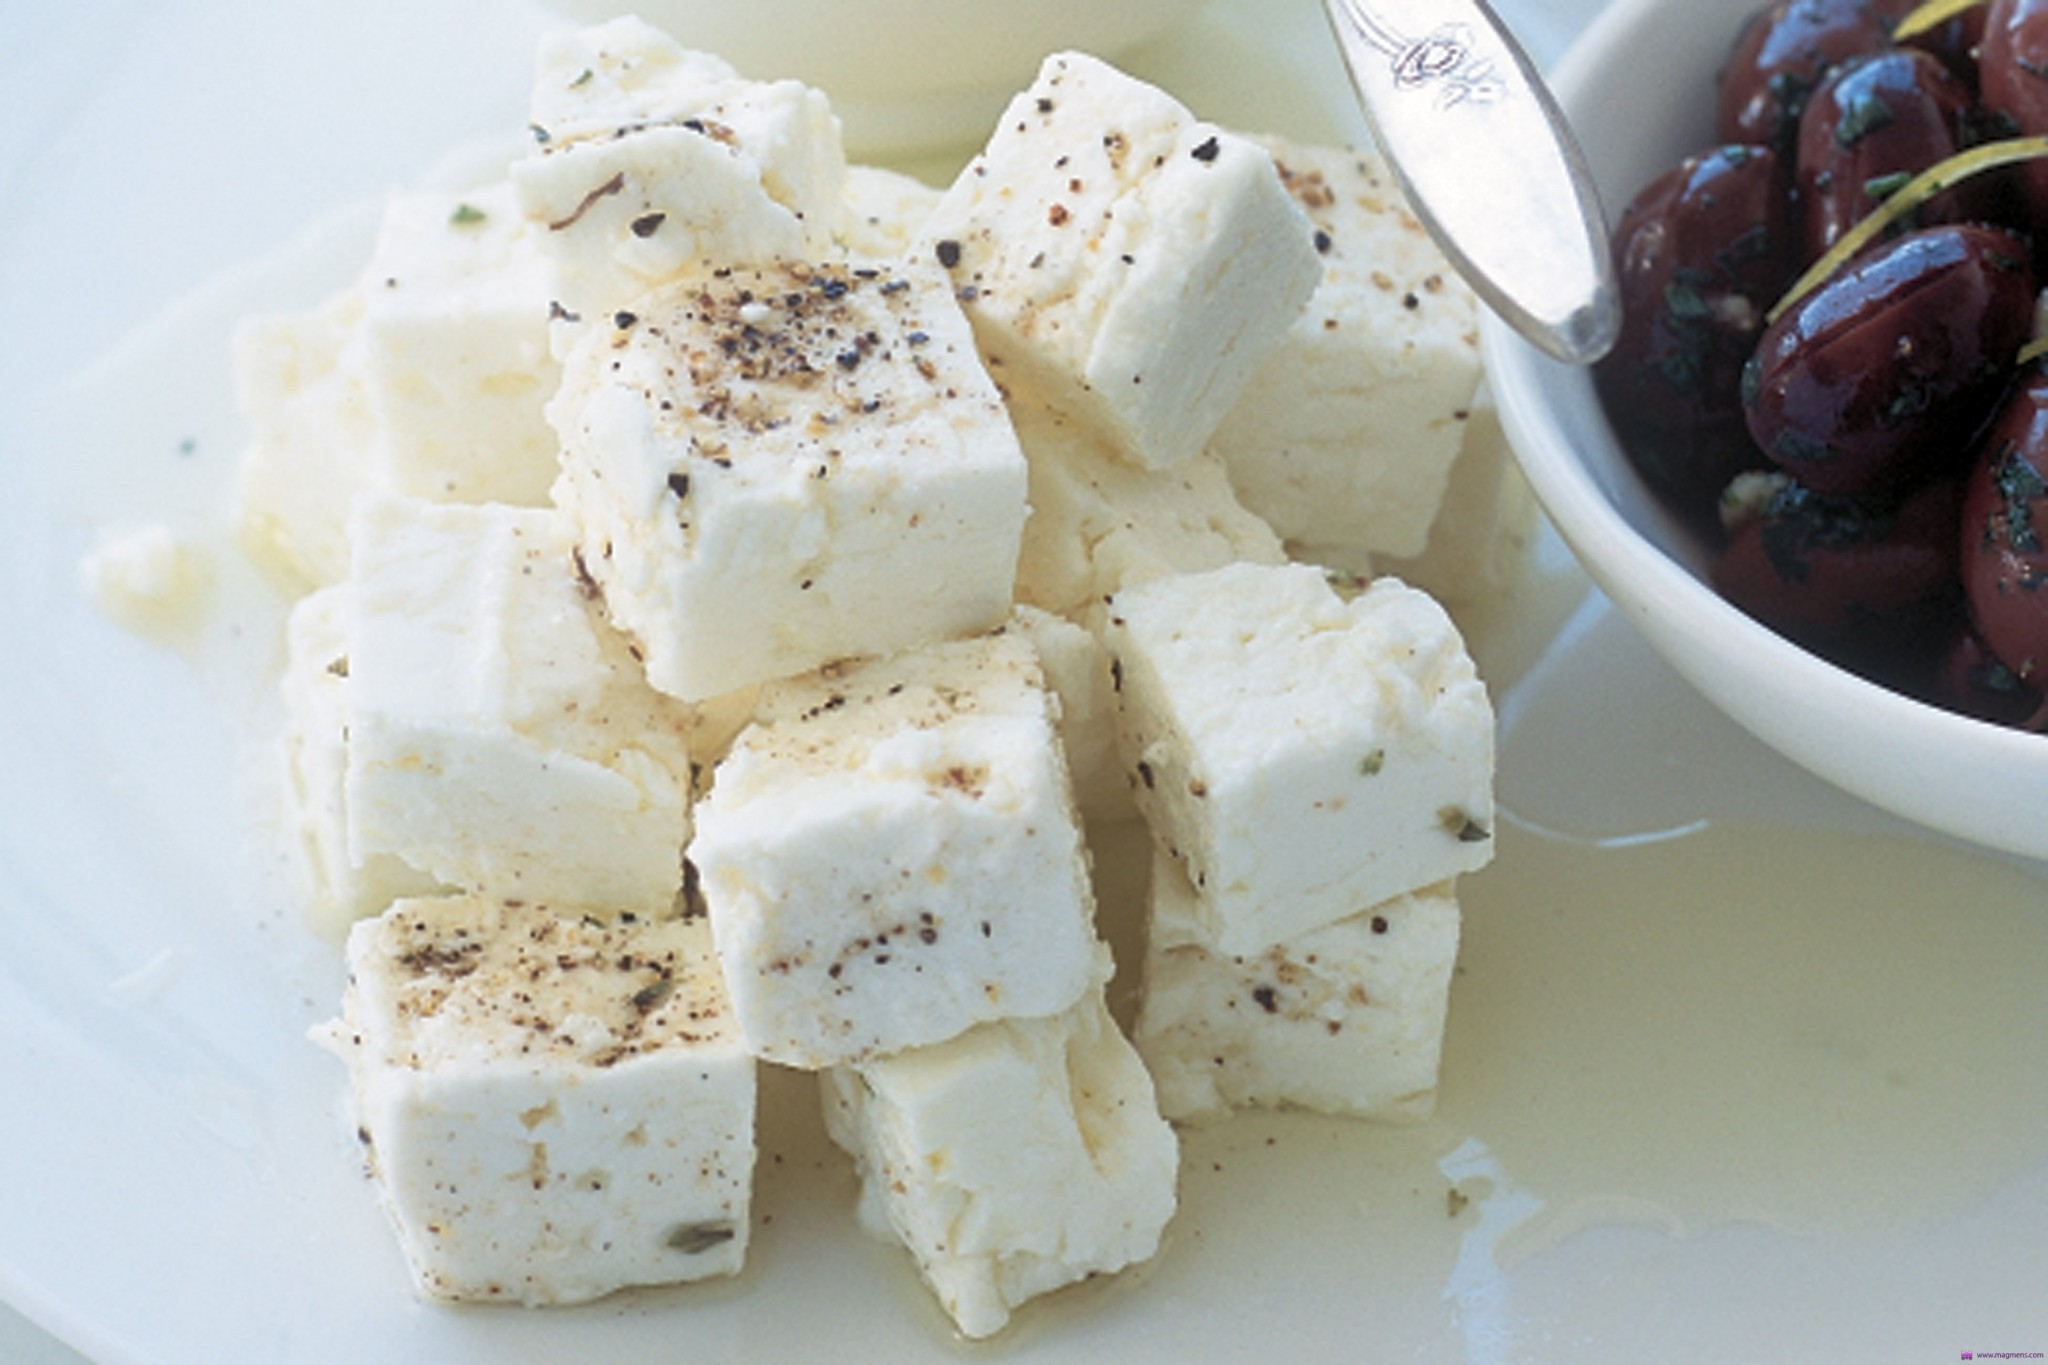 Tofu - Top 10 Fat-Burning Foods